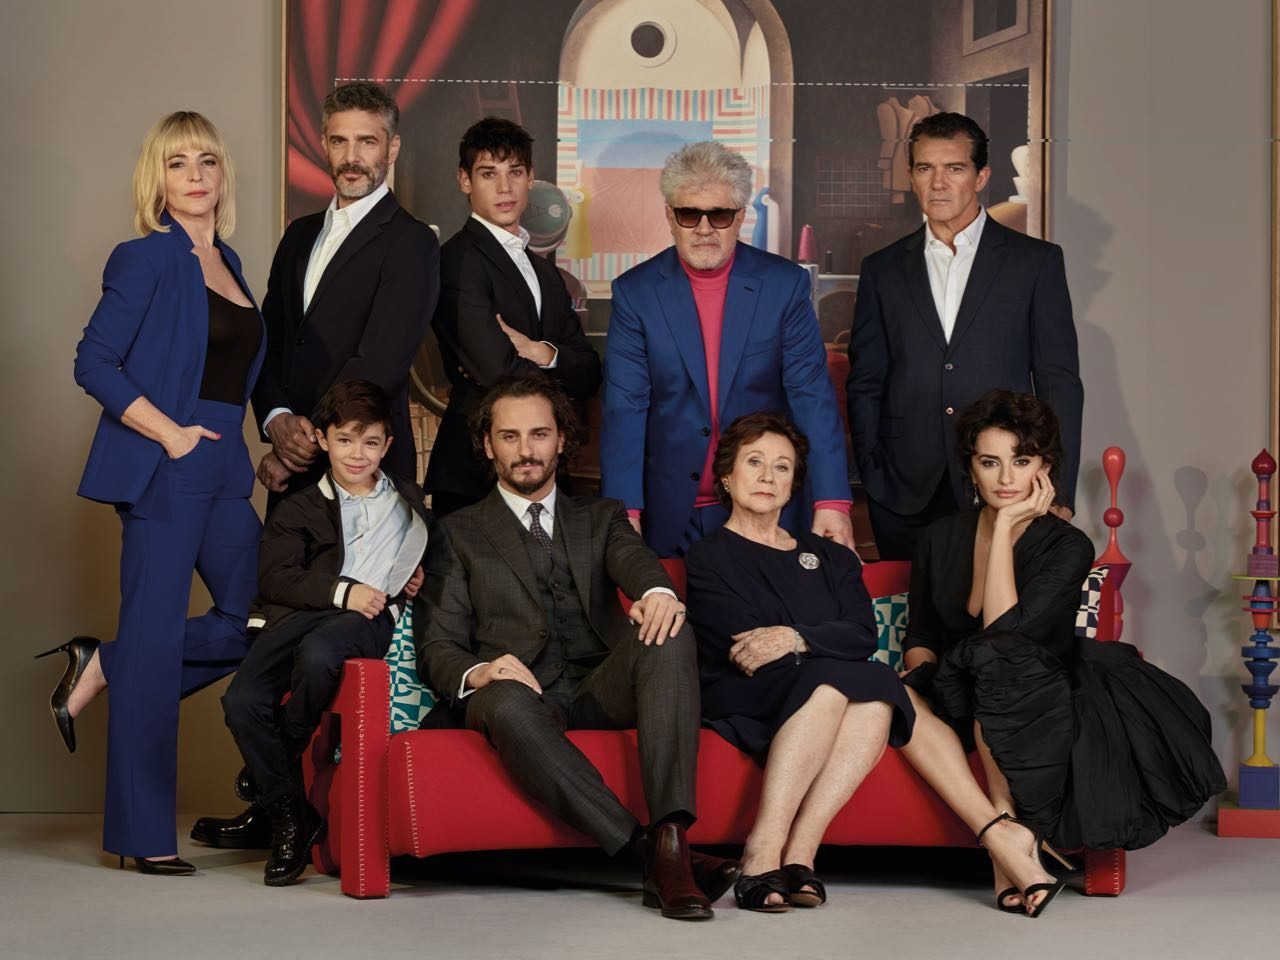 Spanish director Pedro Almodóvar and the cast of Pain and Glory.